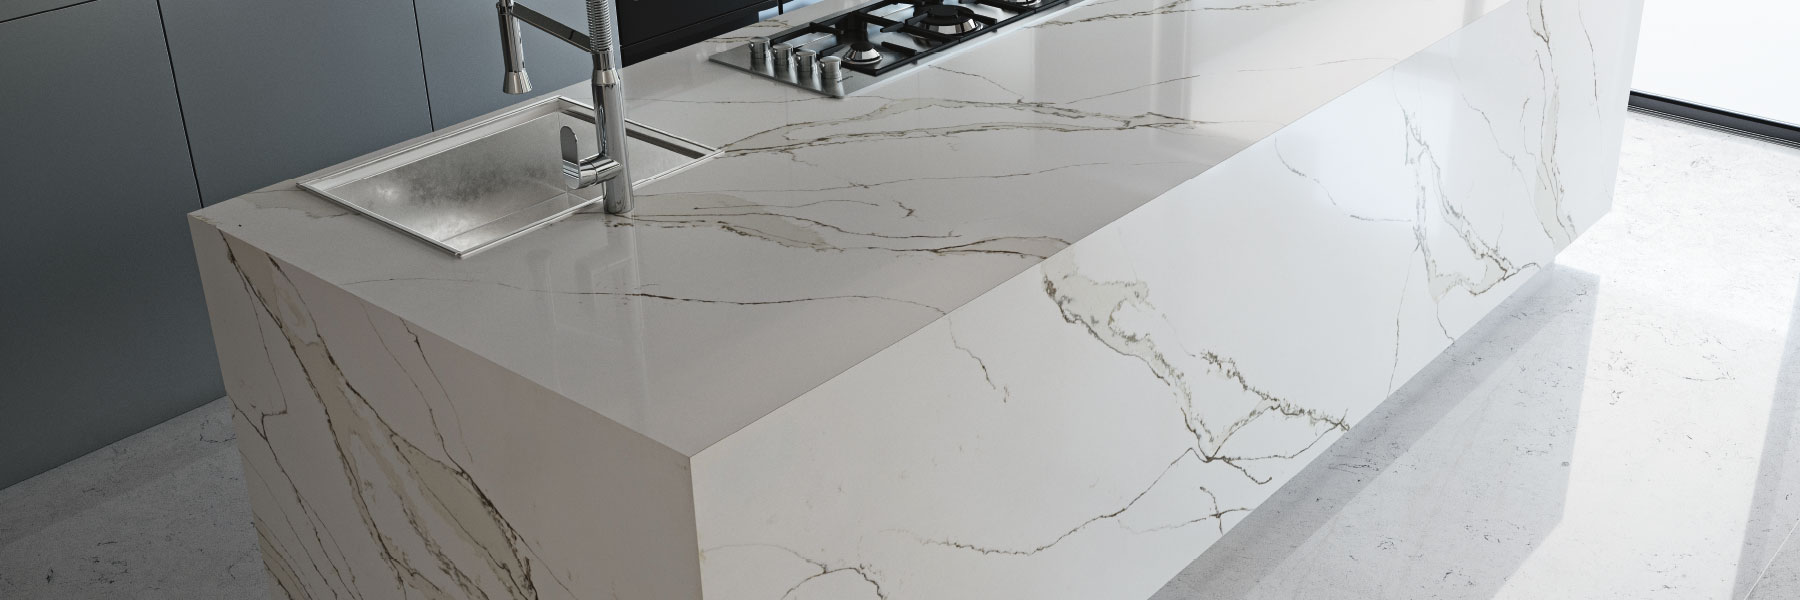 COMPAC, COMPACSURFACES, COMPAC THE SURFACE COMPANY, UNIQUE COLLECTION, CALACATTA GOLD